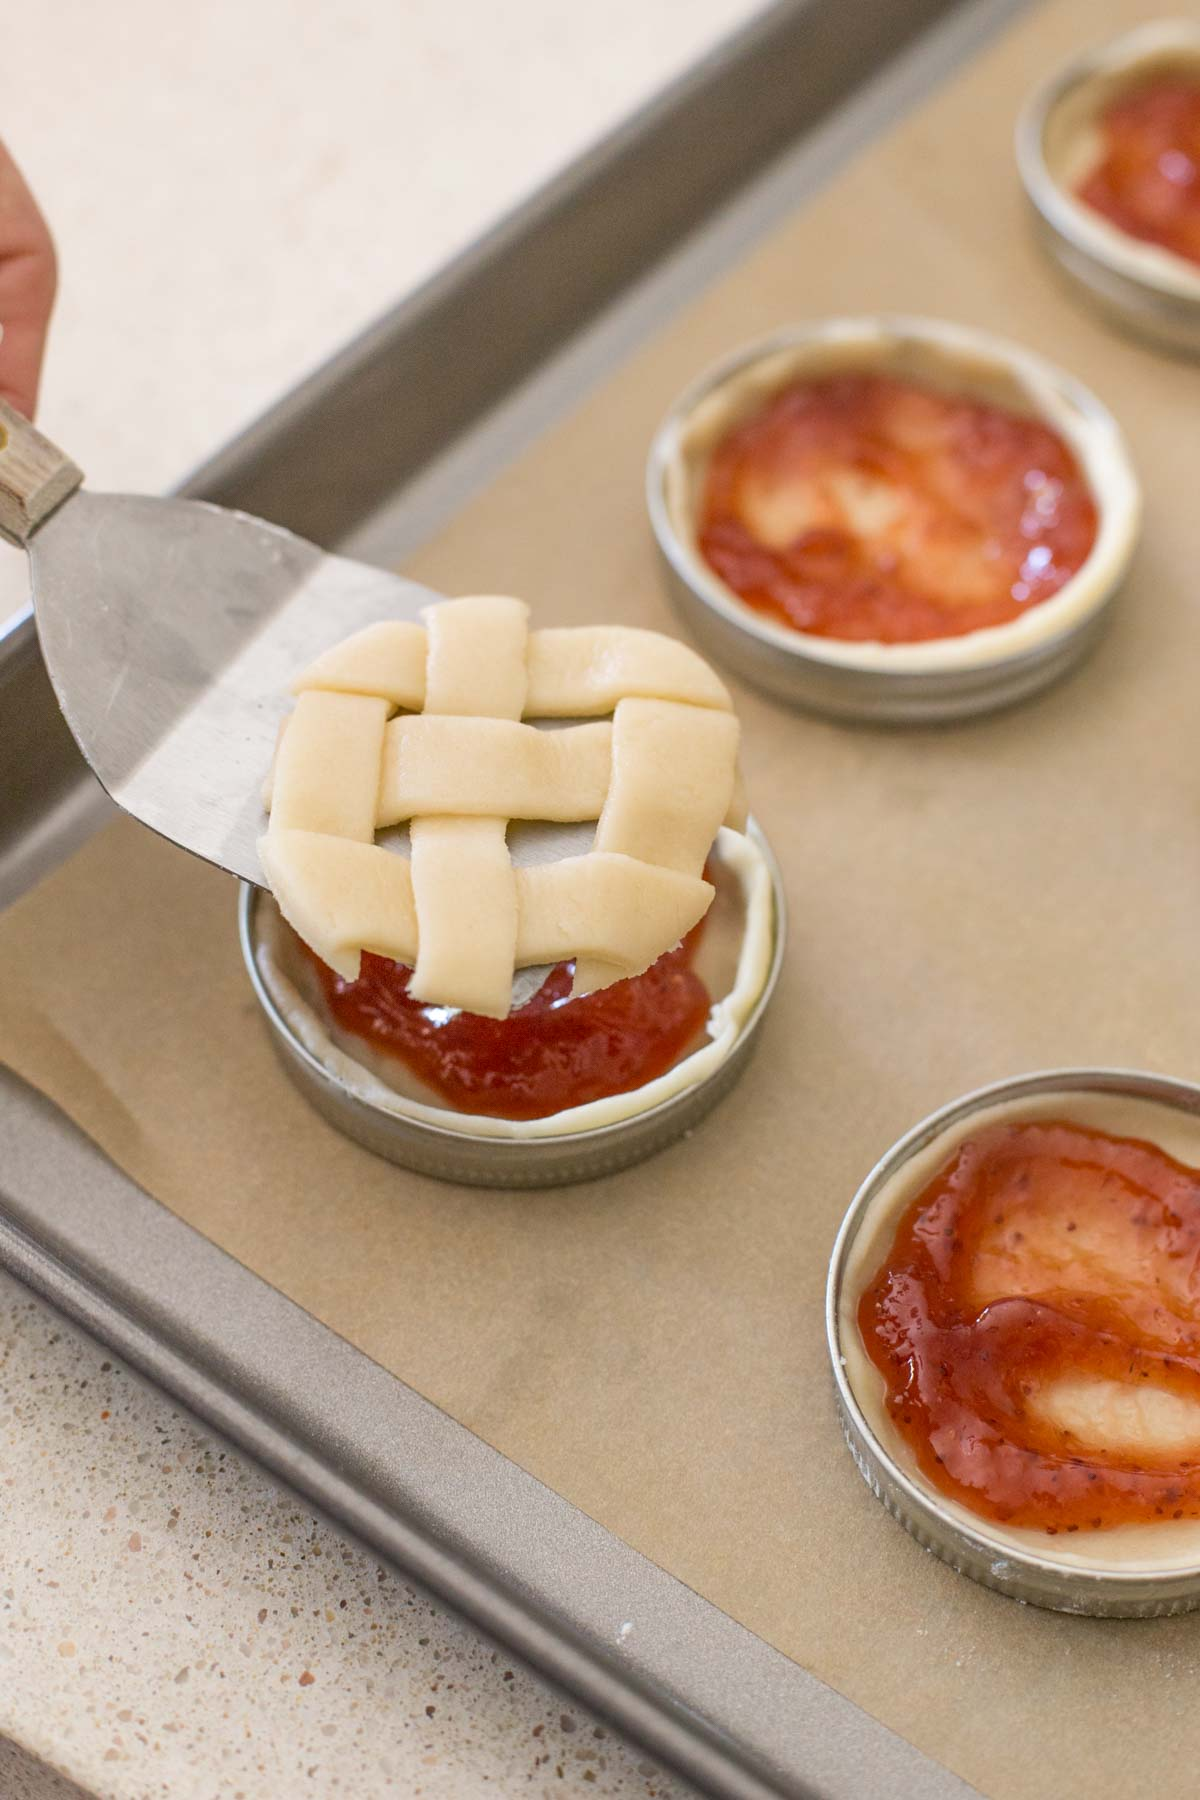 Mason jar lids arranged on a parchment paper lined baking sheet, with the pie dough and strawberry filling in them, and a metal spatula being used to transfer the circle lattice top onto the top of the pie.